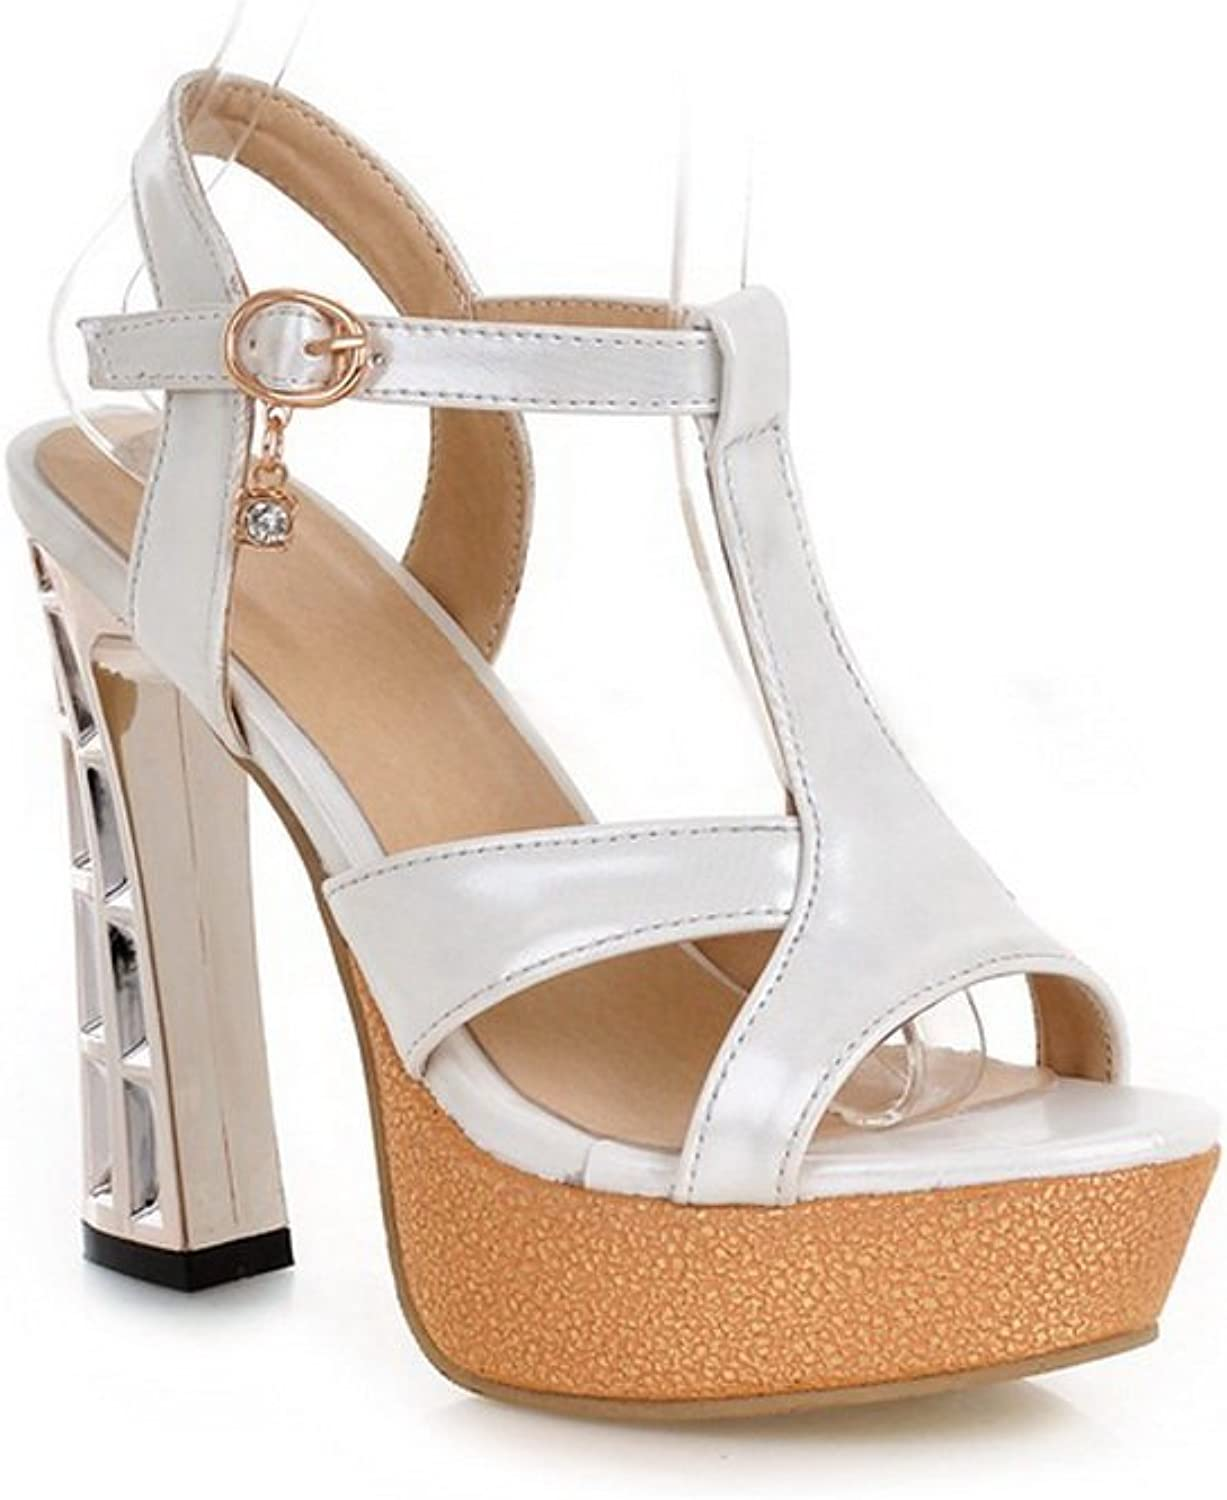 1TO9 Ladies Studded Rhinestones Heel Open-Toe White Soft Material Sandals - 10 B(M) US